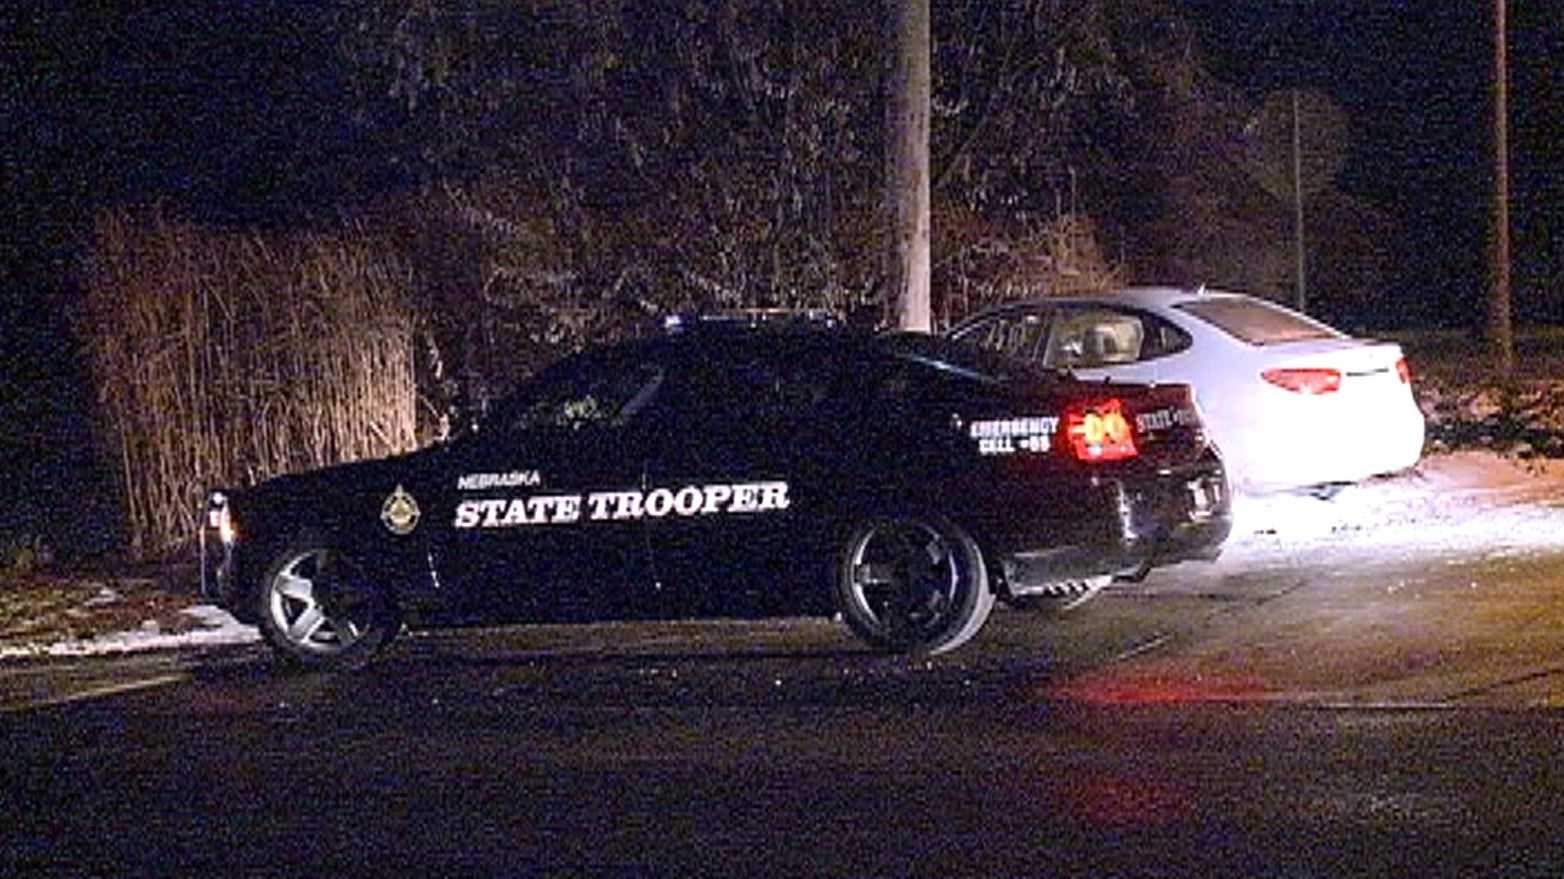 overnight chase - state trooper.JPG